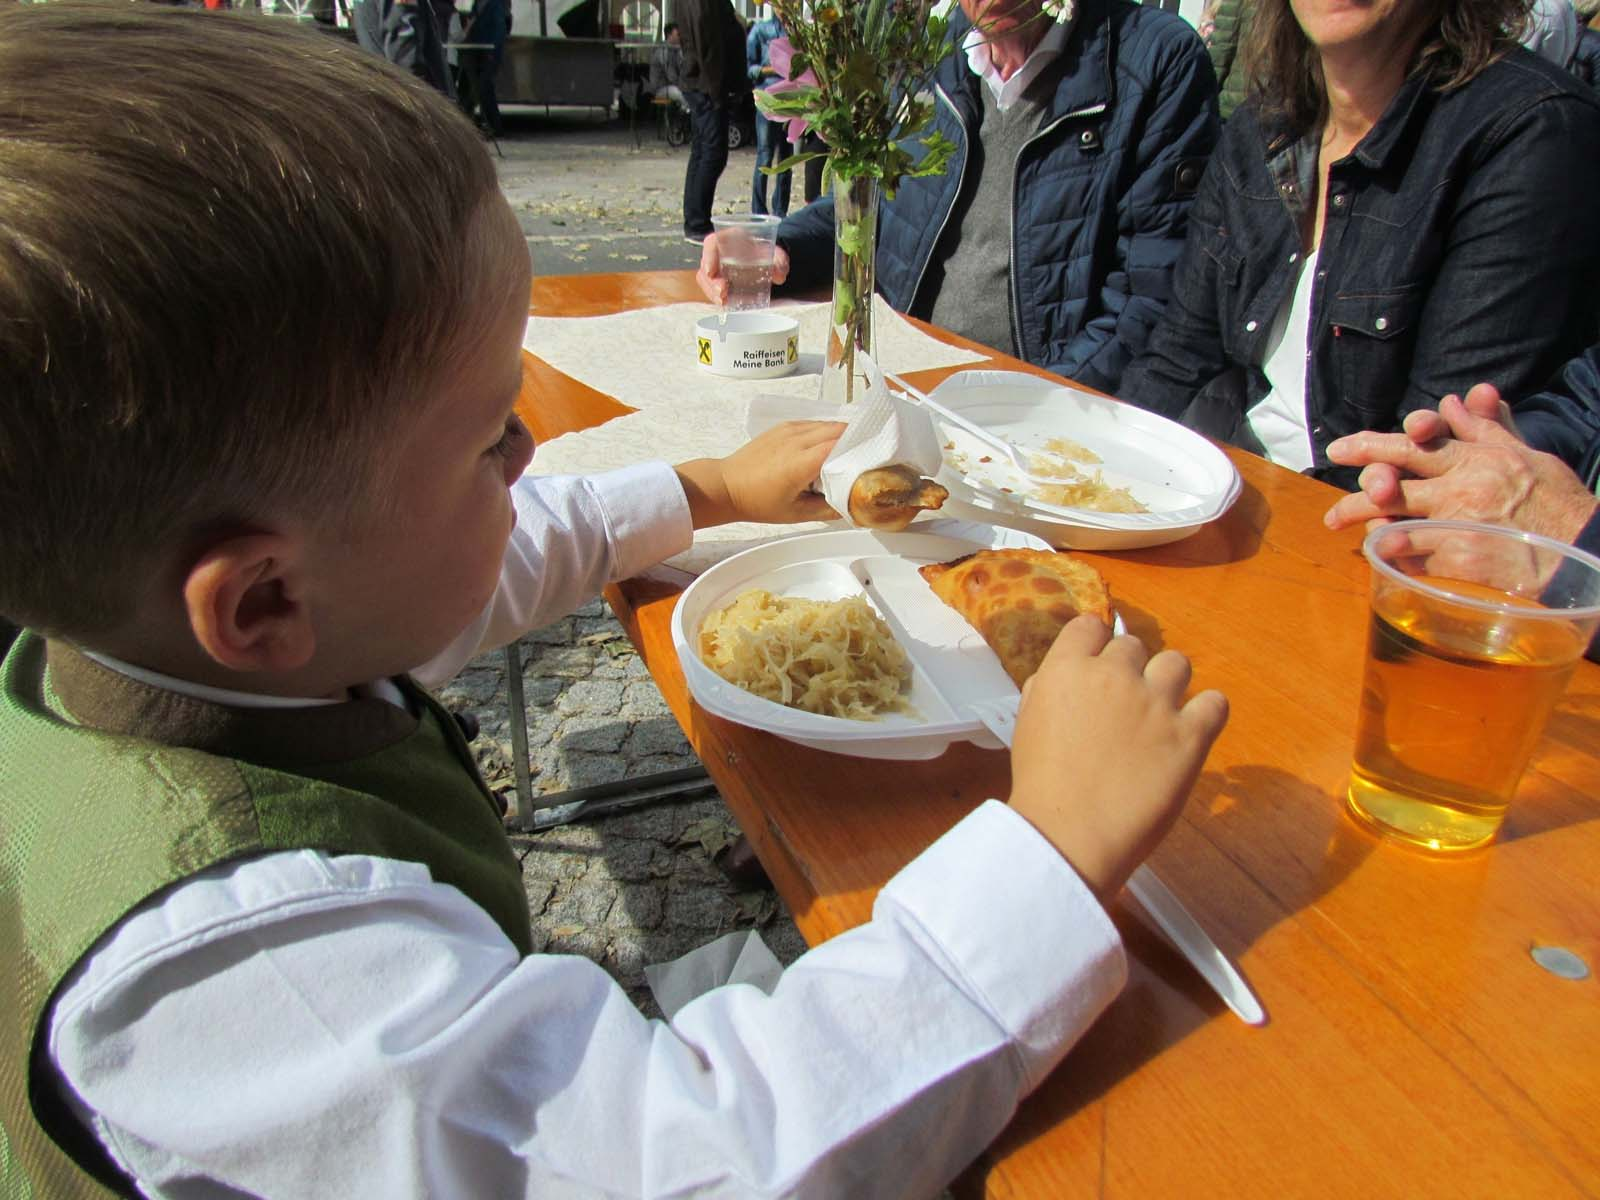 traditional food at the Eben Fair